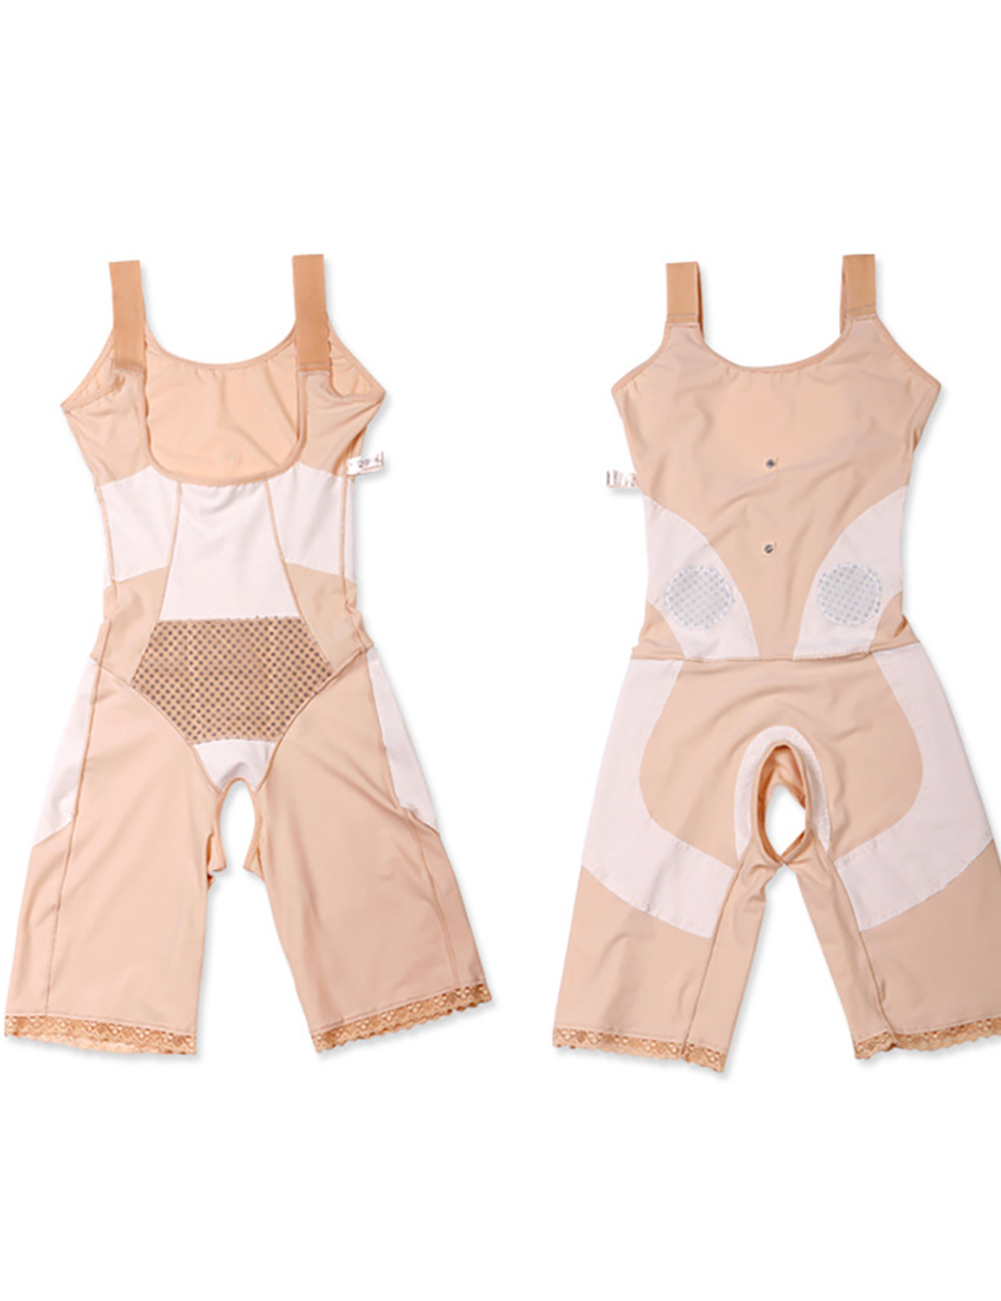 //cdn.affectcloud.com/lover-beauty/upload/imgs/Shapewear/Full_Body_Shaper/LB60715/LB60715-201909235d8863af66724.jpg